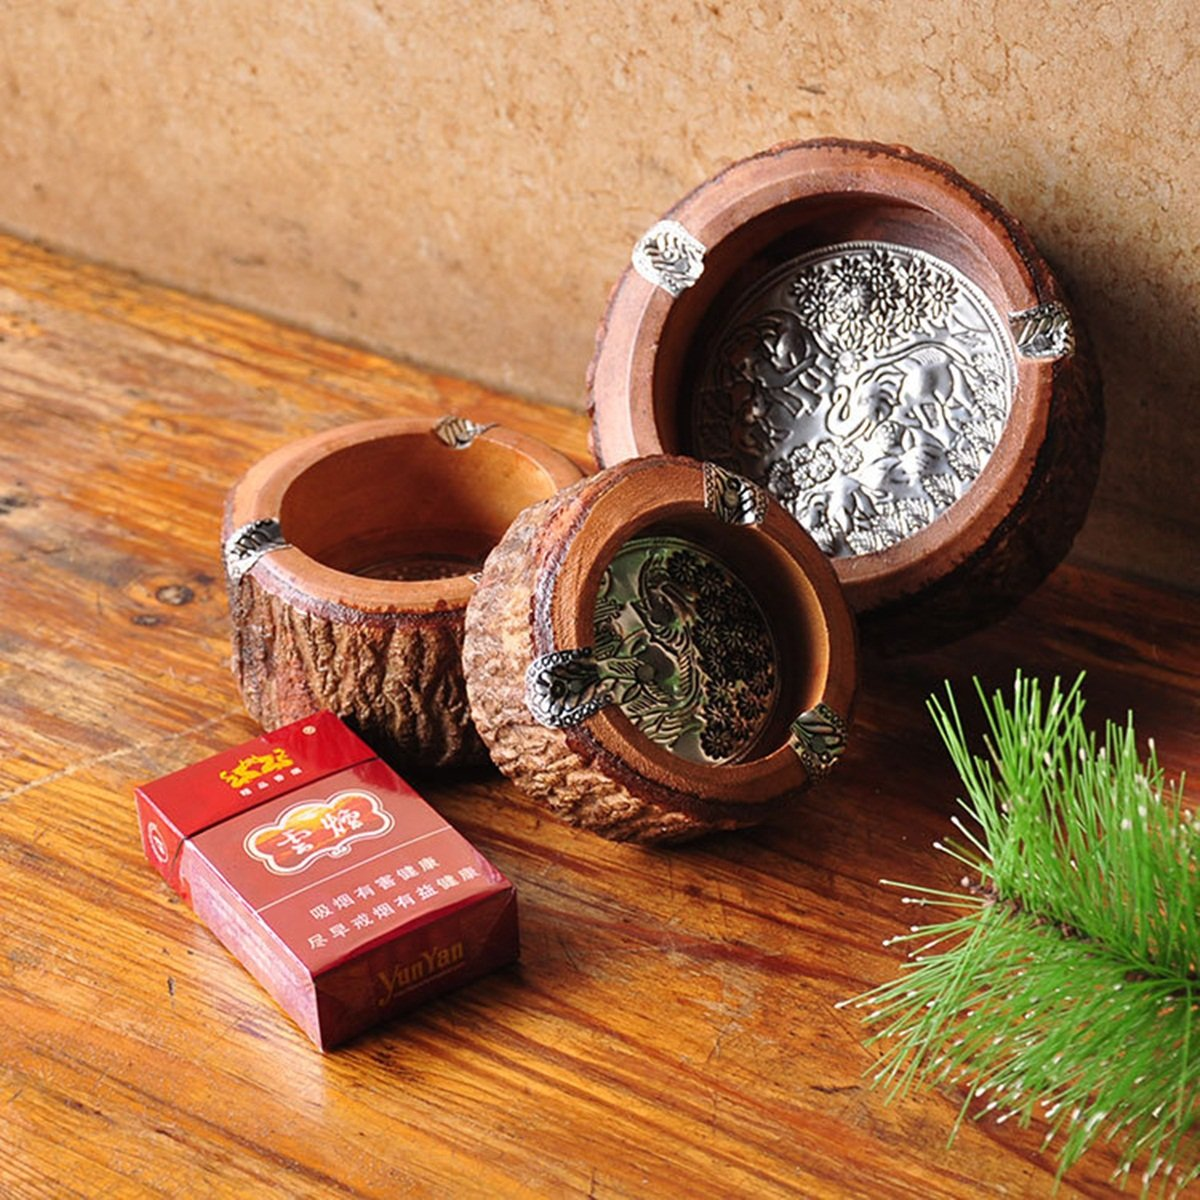 5.5cm - 10.16cm Diameter Unique Handmade Vintage Round Original Antique Wooden Cigarette Ashtray Ash Tray,Nice Decoration for House/Room/Office Decorative Indoor Outdoor 4